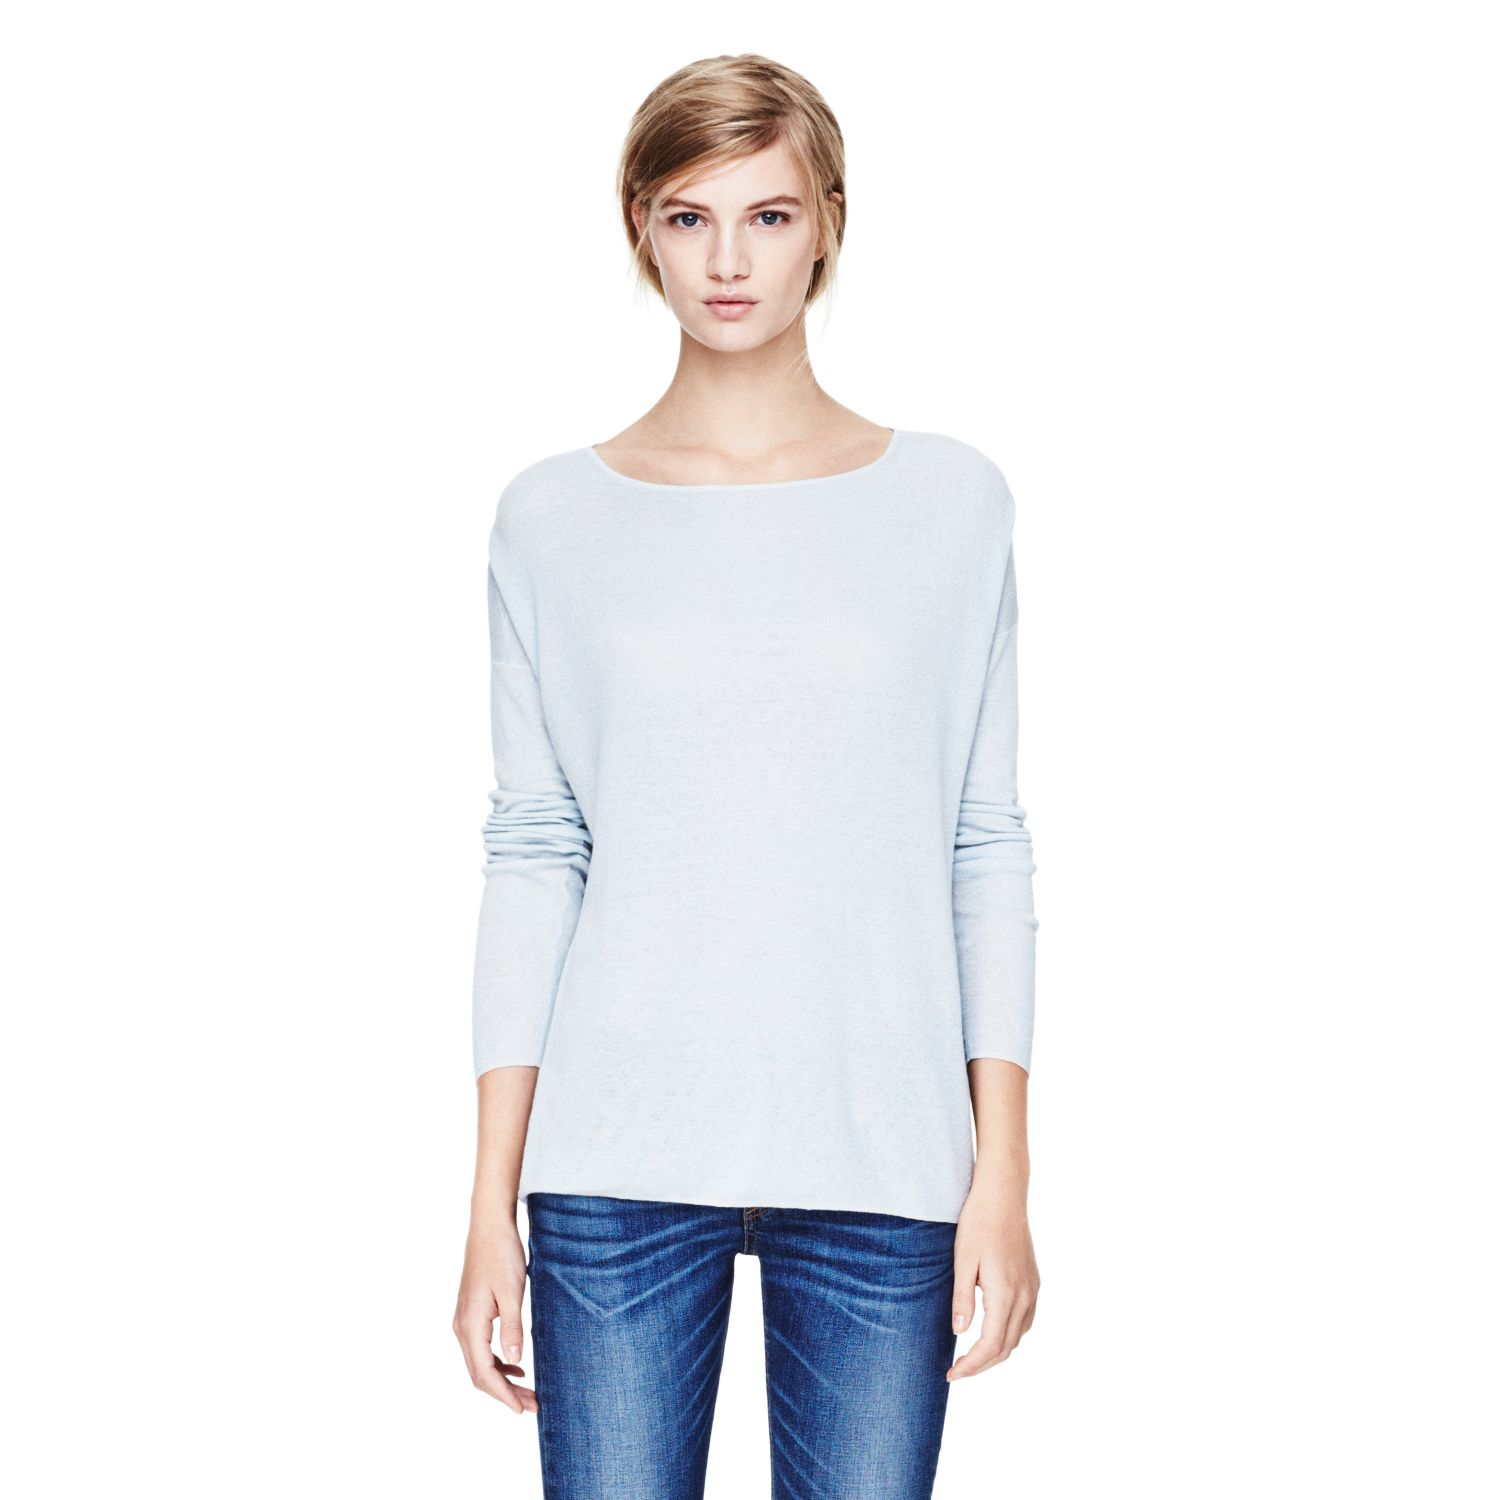 Theory Forestra Sweater in Sag Harbor in White (OPALESCENT